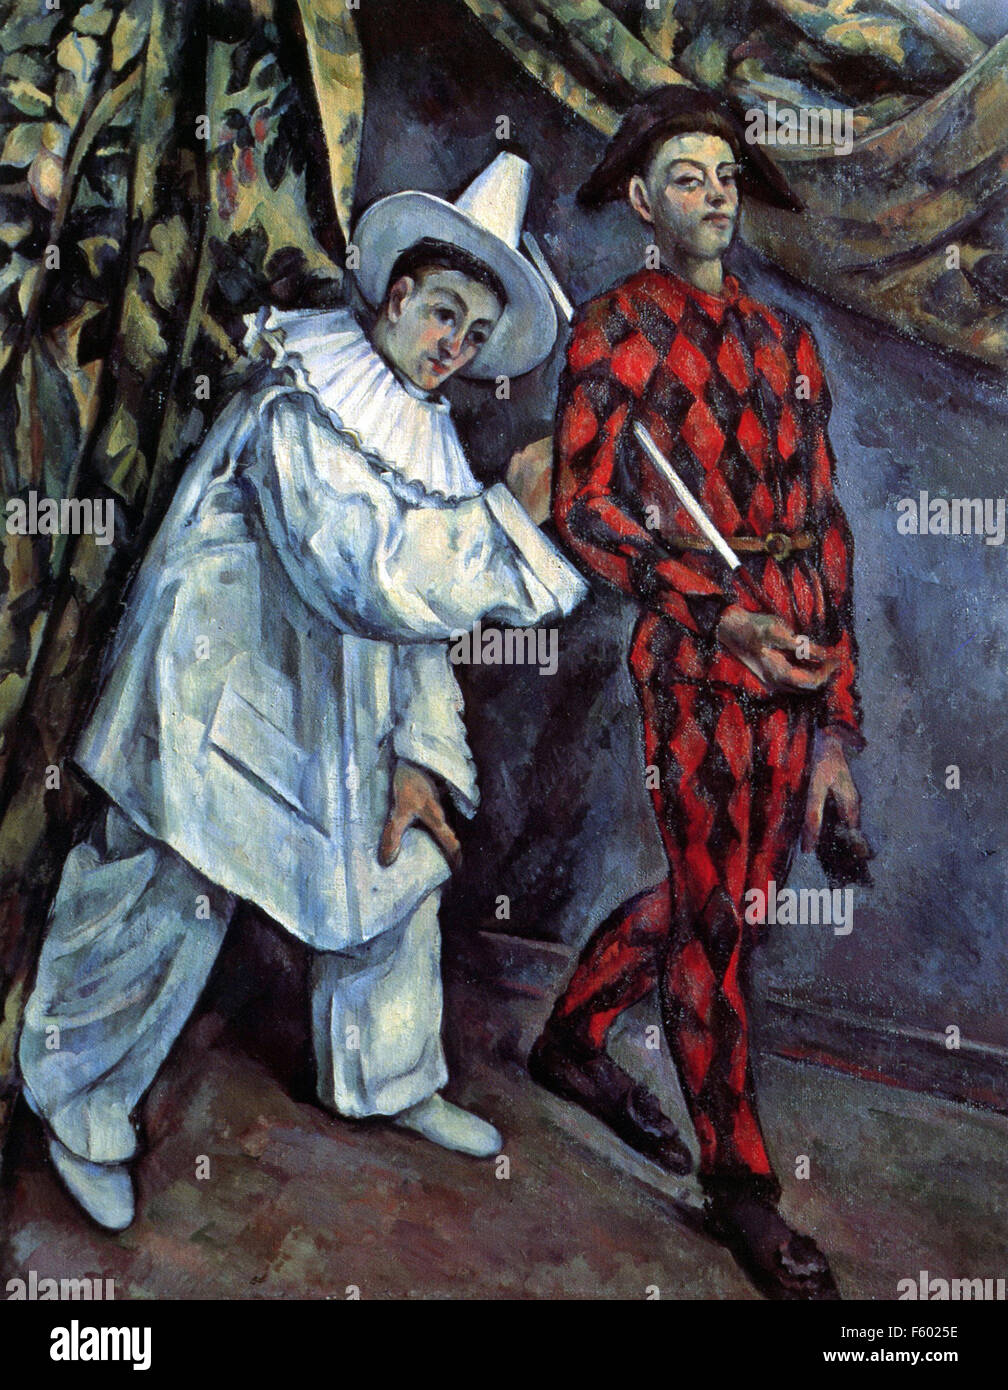 Paul Cézanne - Pierrot and Harlequin (Mardi Gras) - Stock Image